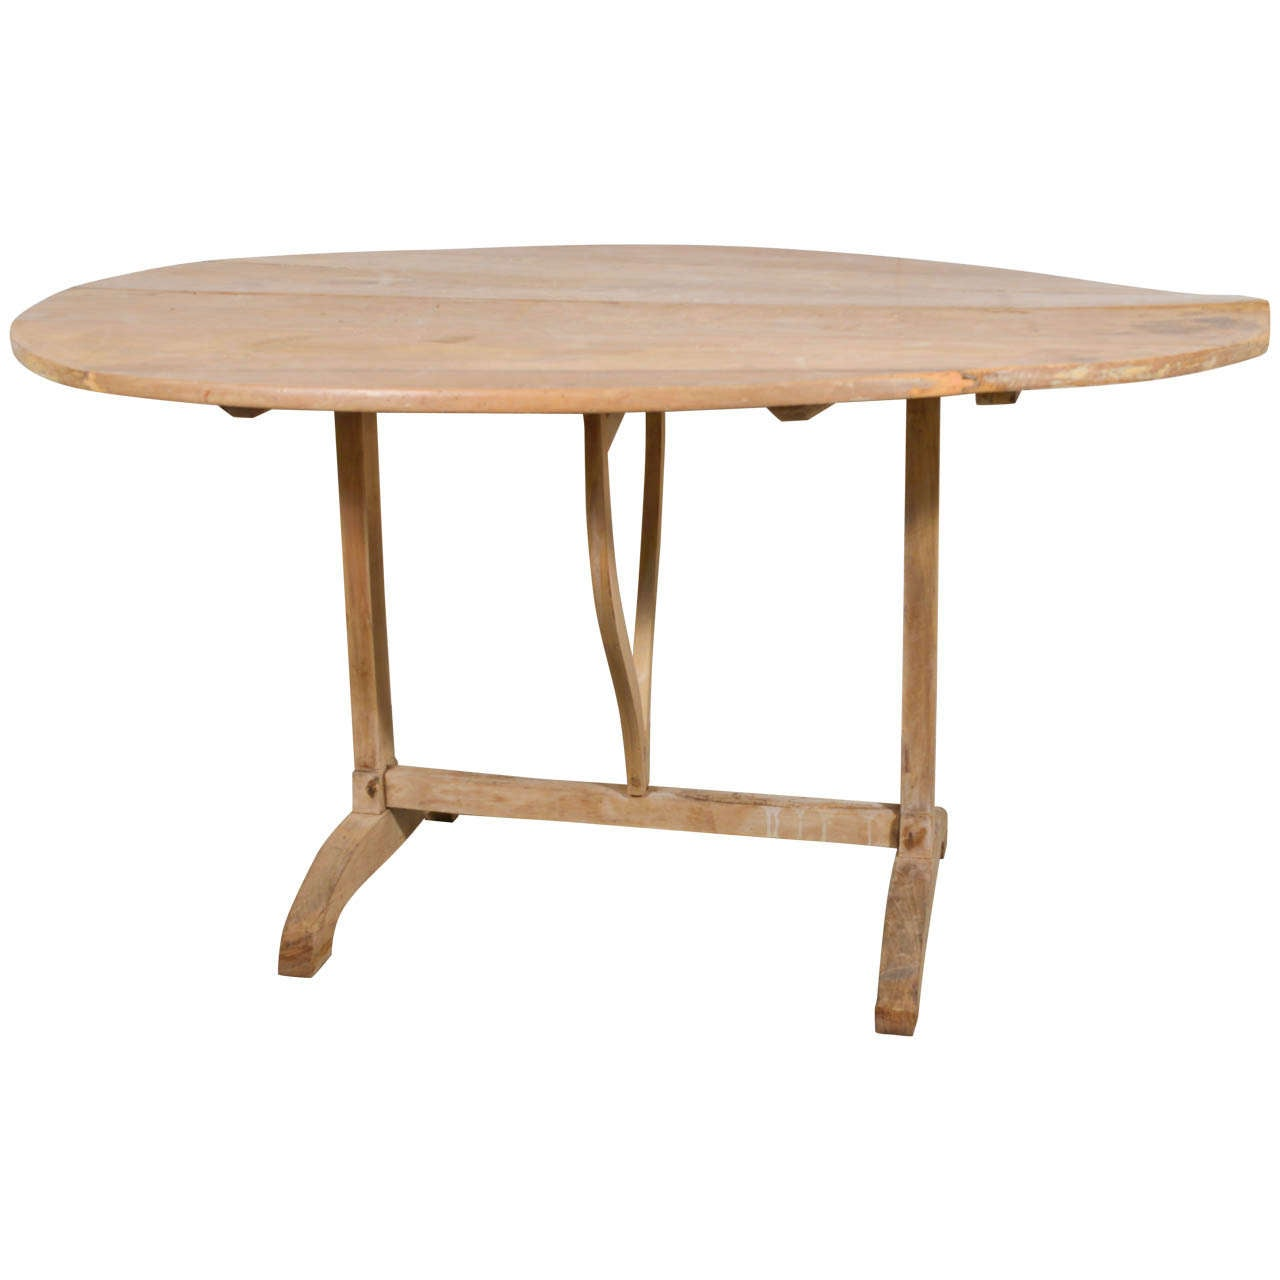 beech wood dining table beech wood vineyard table at 1stdibs 4404